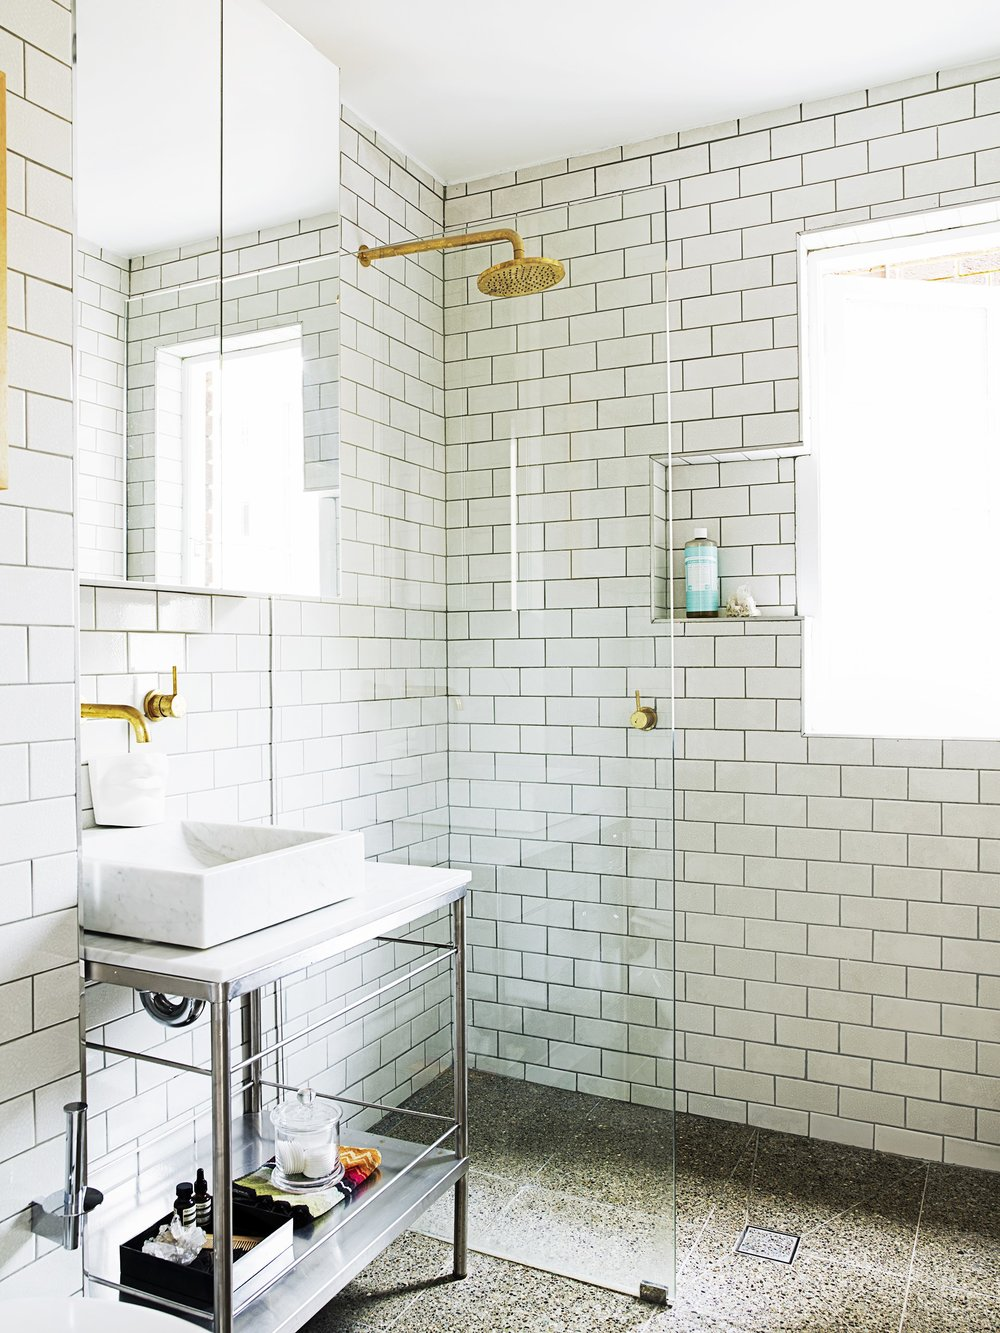 These brass fixtures make a fantastic statement against the modern tiles!